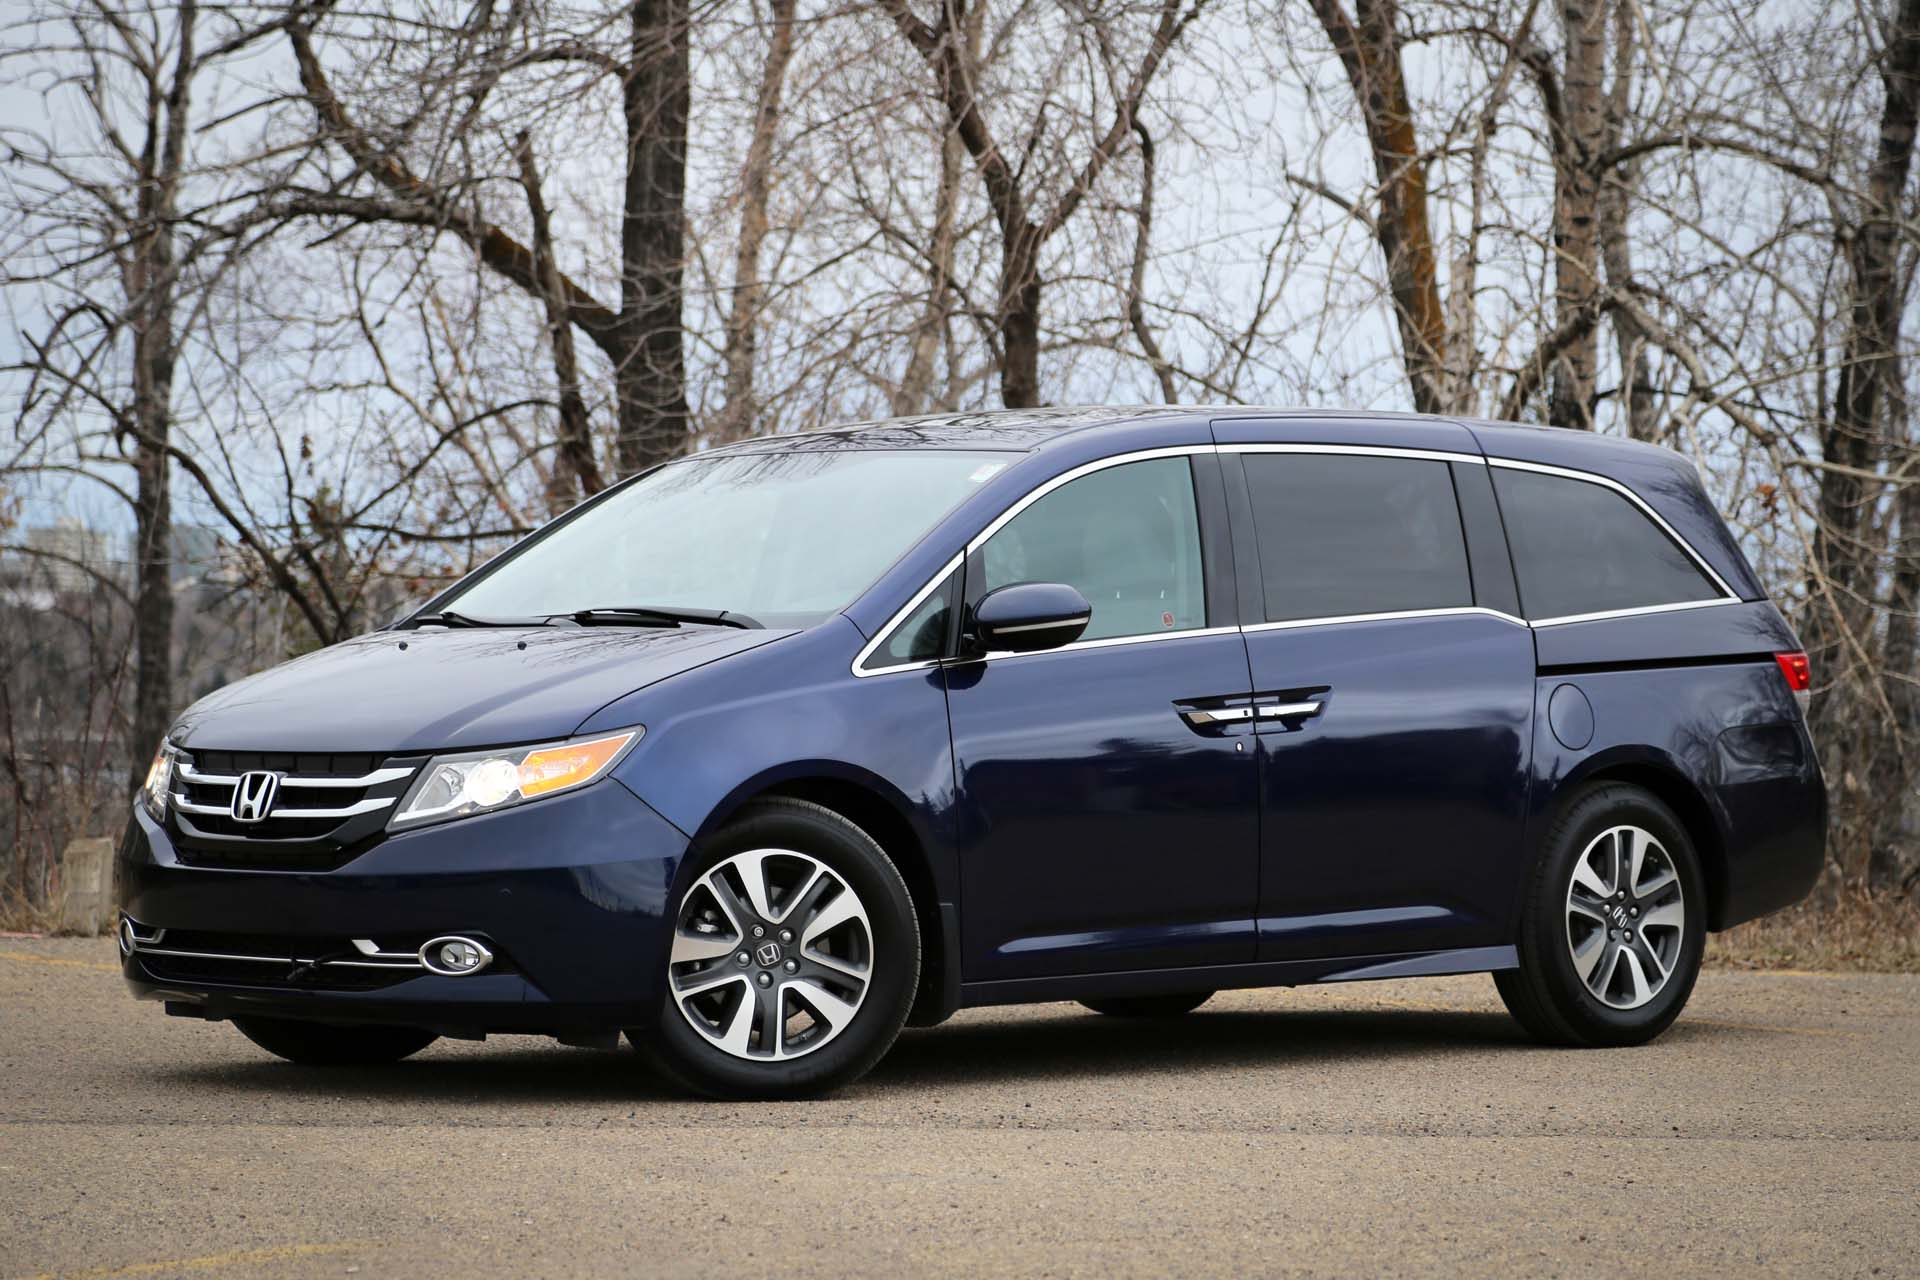 2016 honda odyssey touring. Black Bedroom Furniture Sets. Home Design Ideas